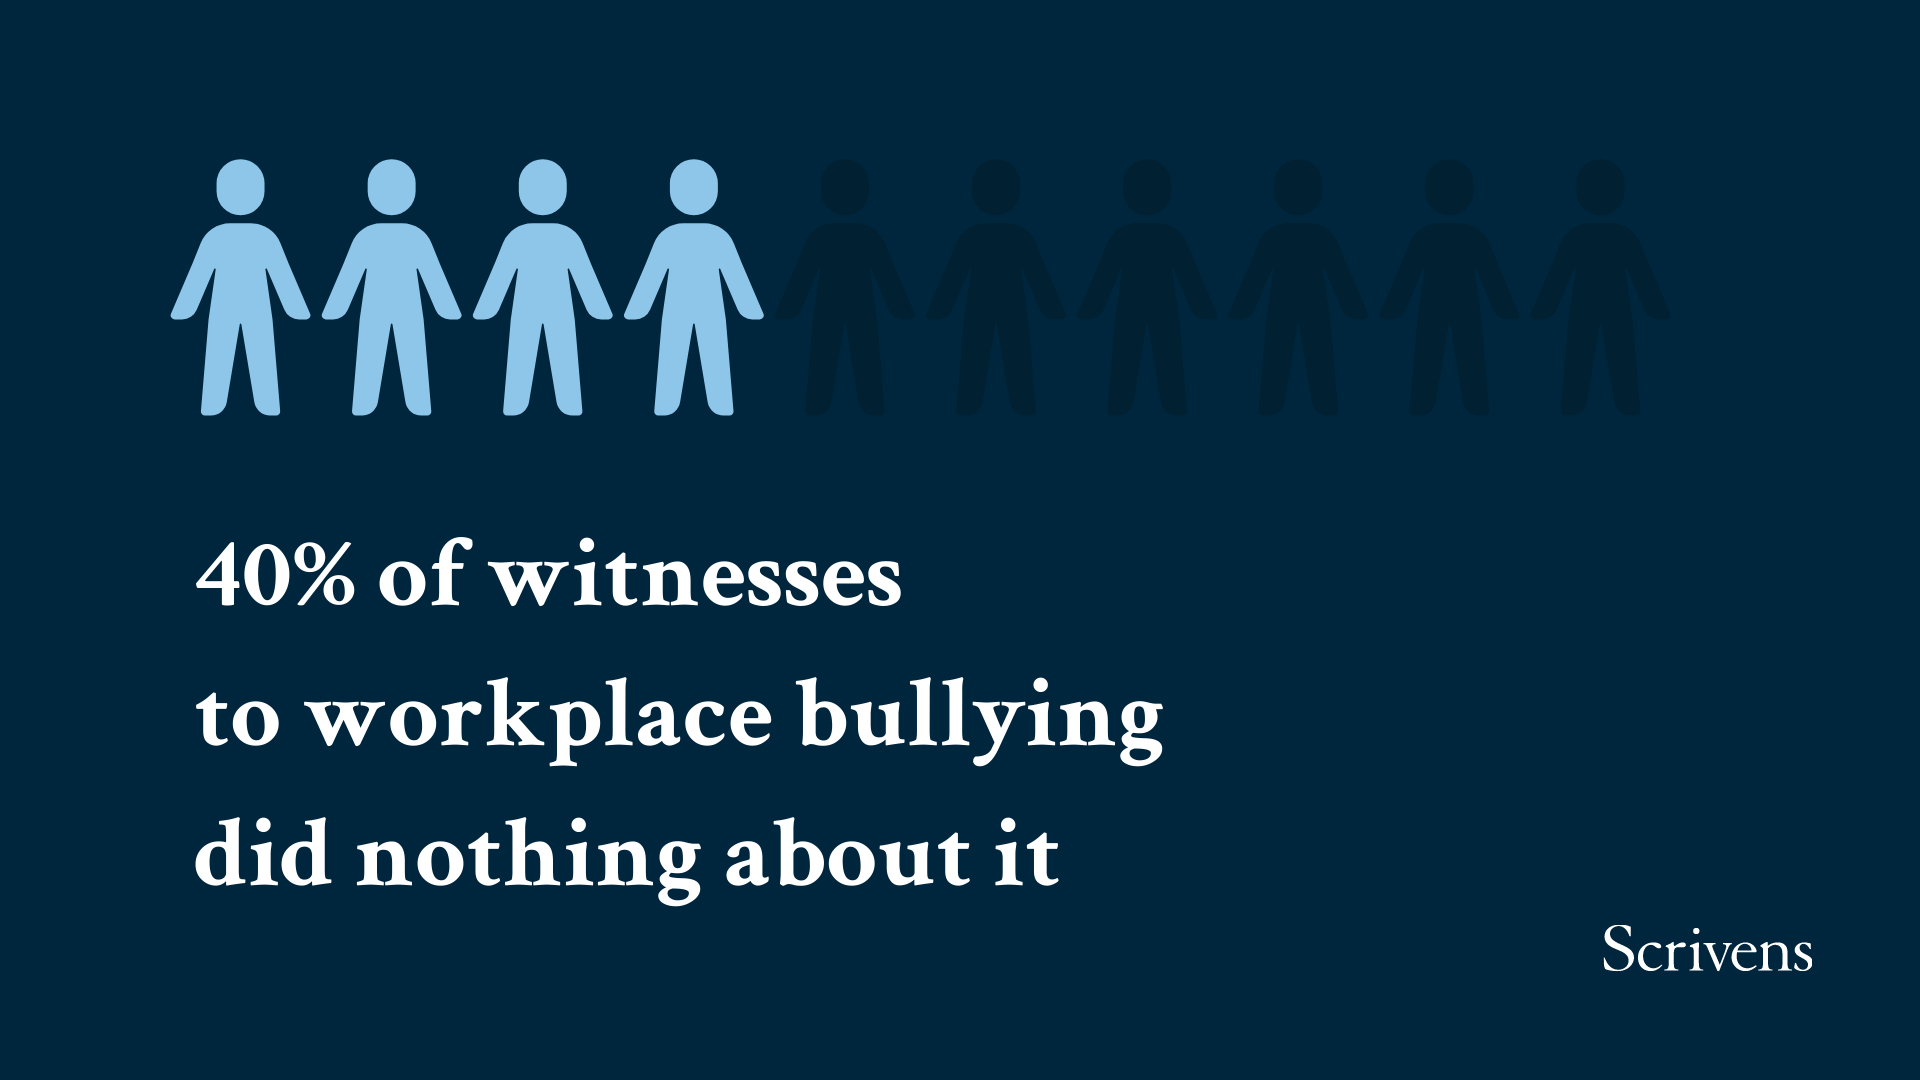 40% of witnesses to workplace bullying did nothing about it